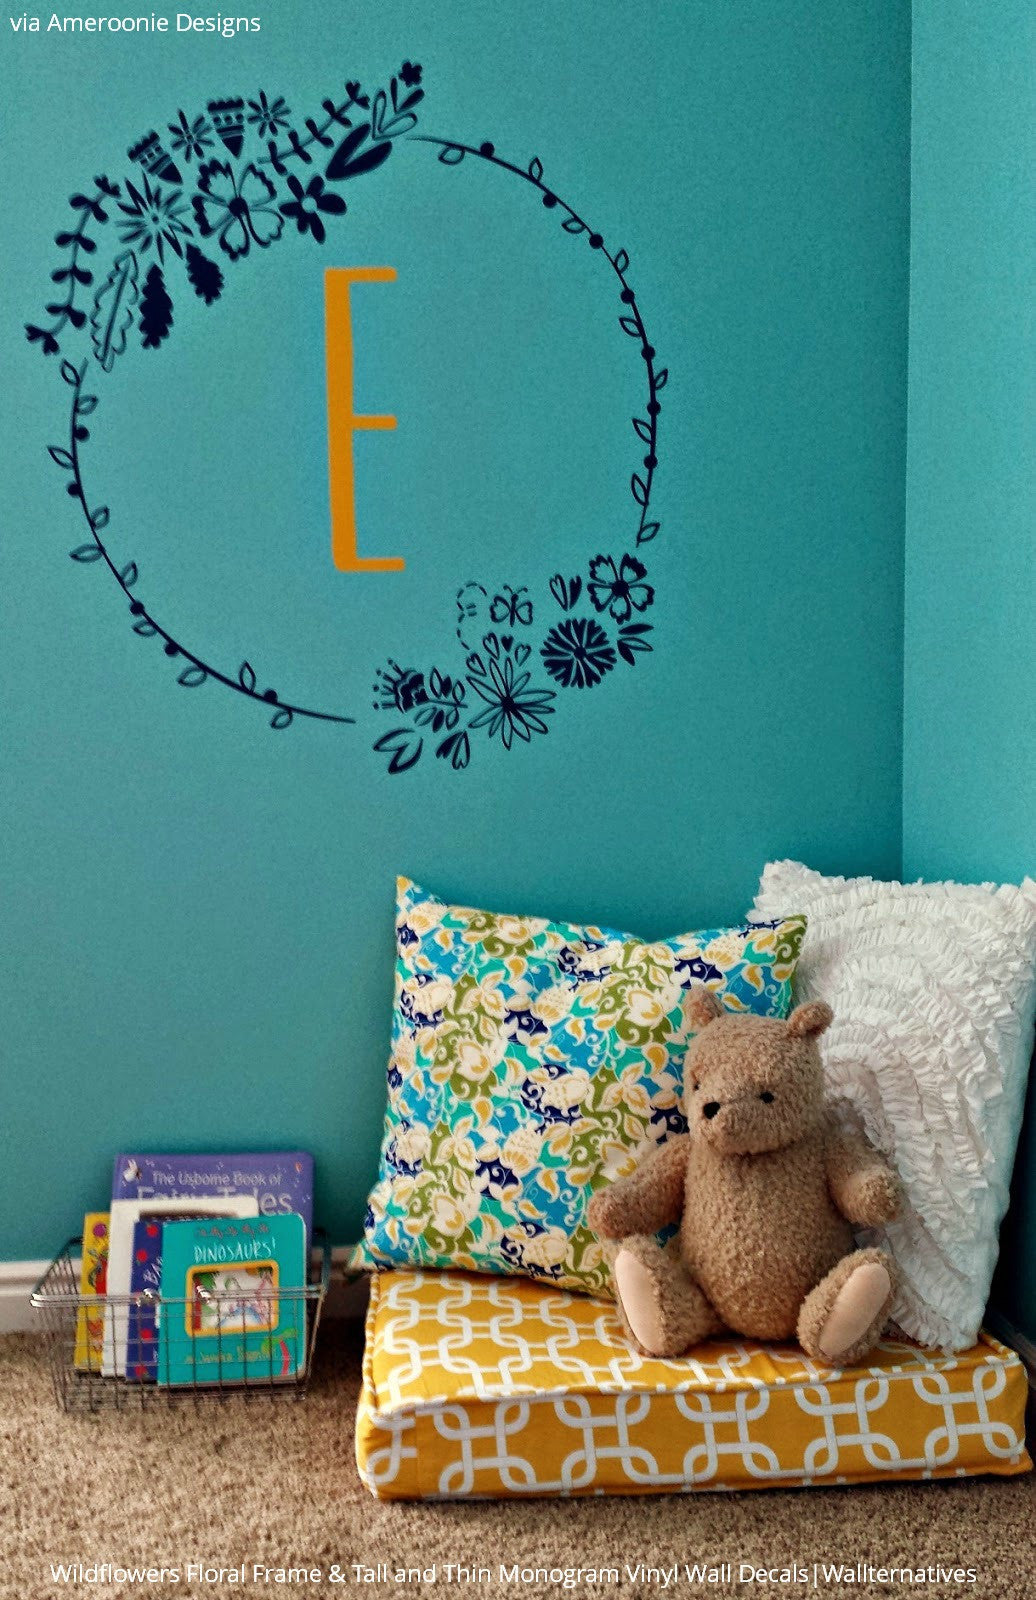 wall art decals for wall decoration vinyl wall stickers wall floral frame wall decal monogram initial wall sticker wallternatives